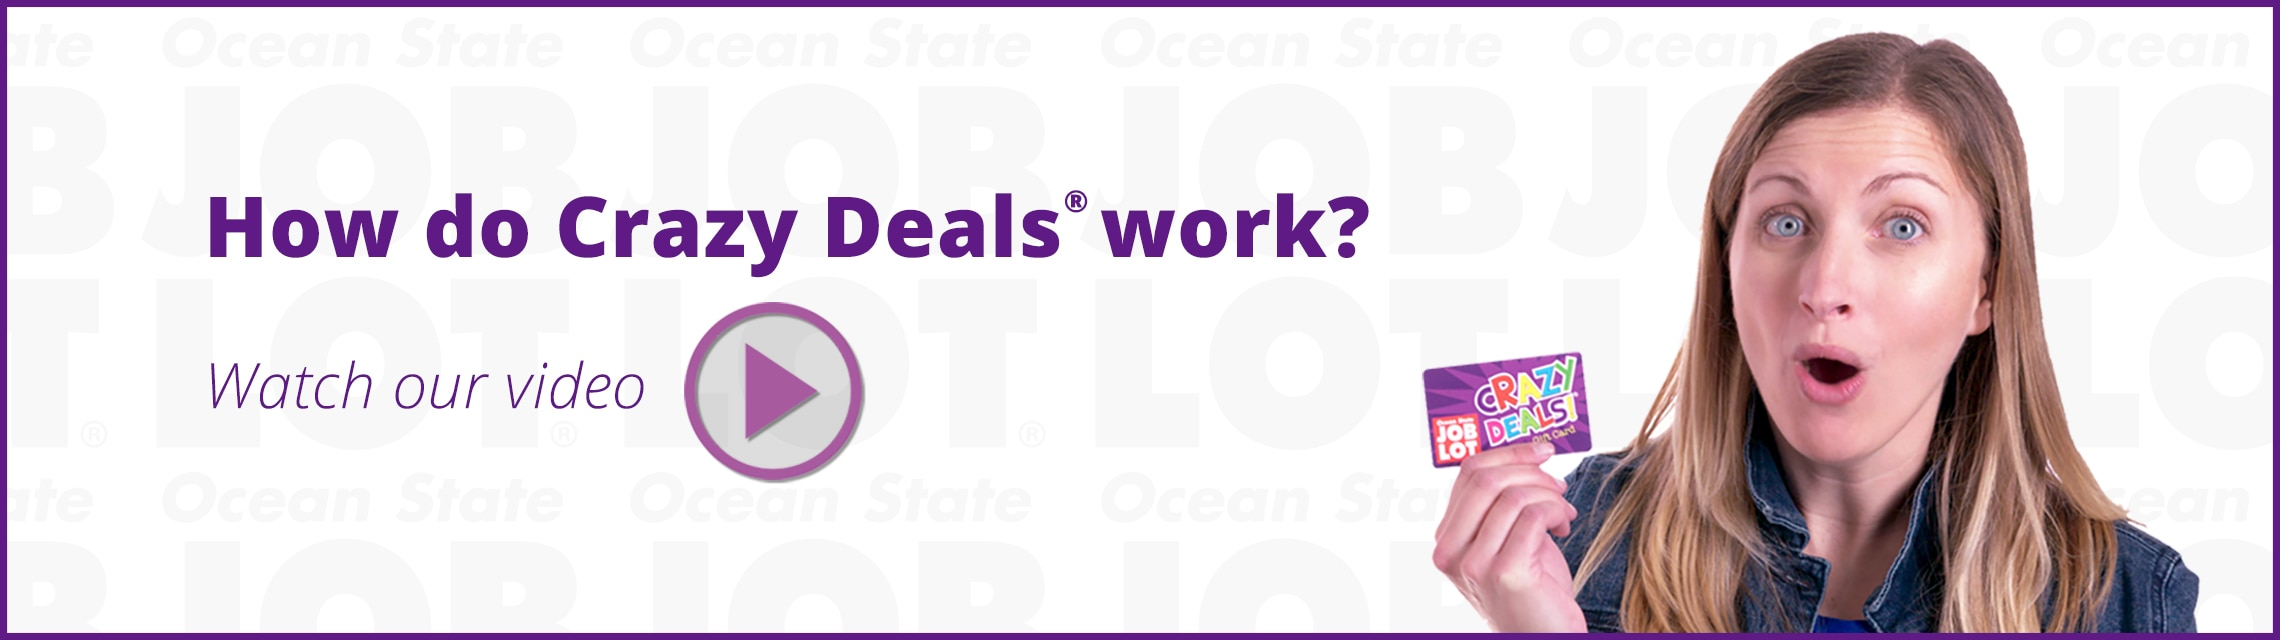 image relating to Ocean State Job Lots Coupons Printable referred to as Ridiculous Offers